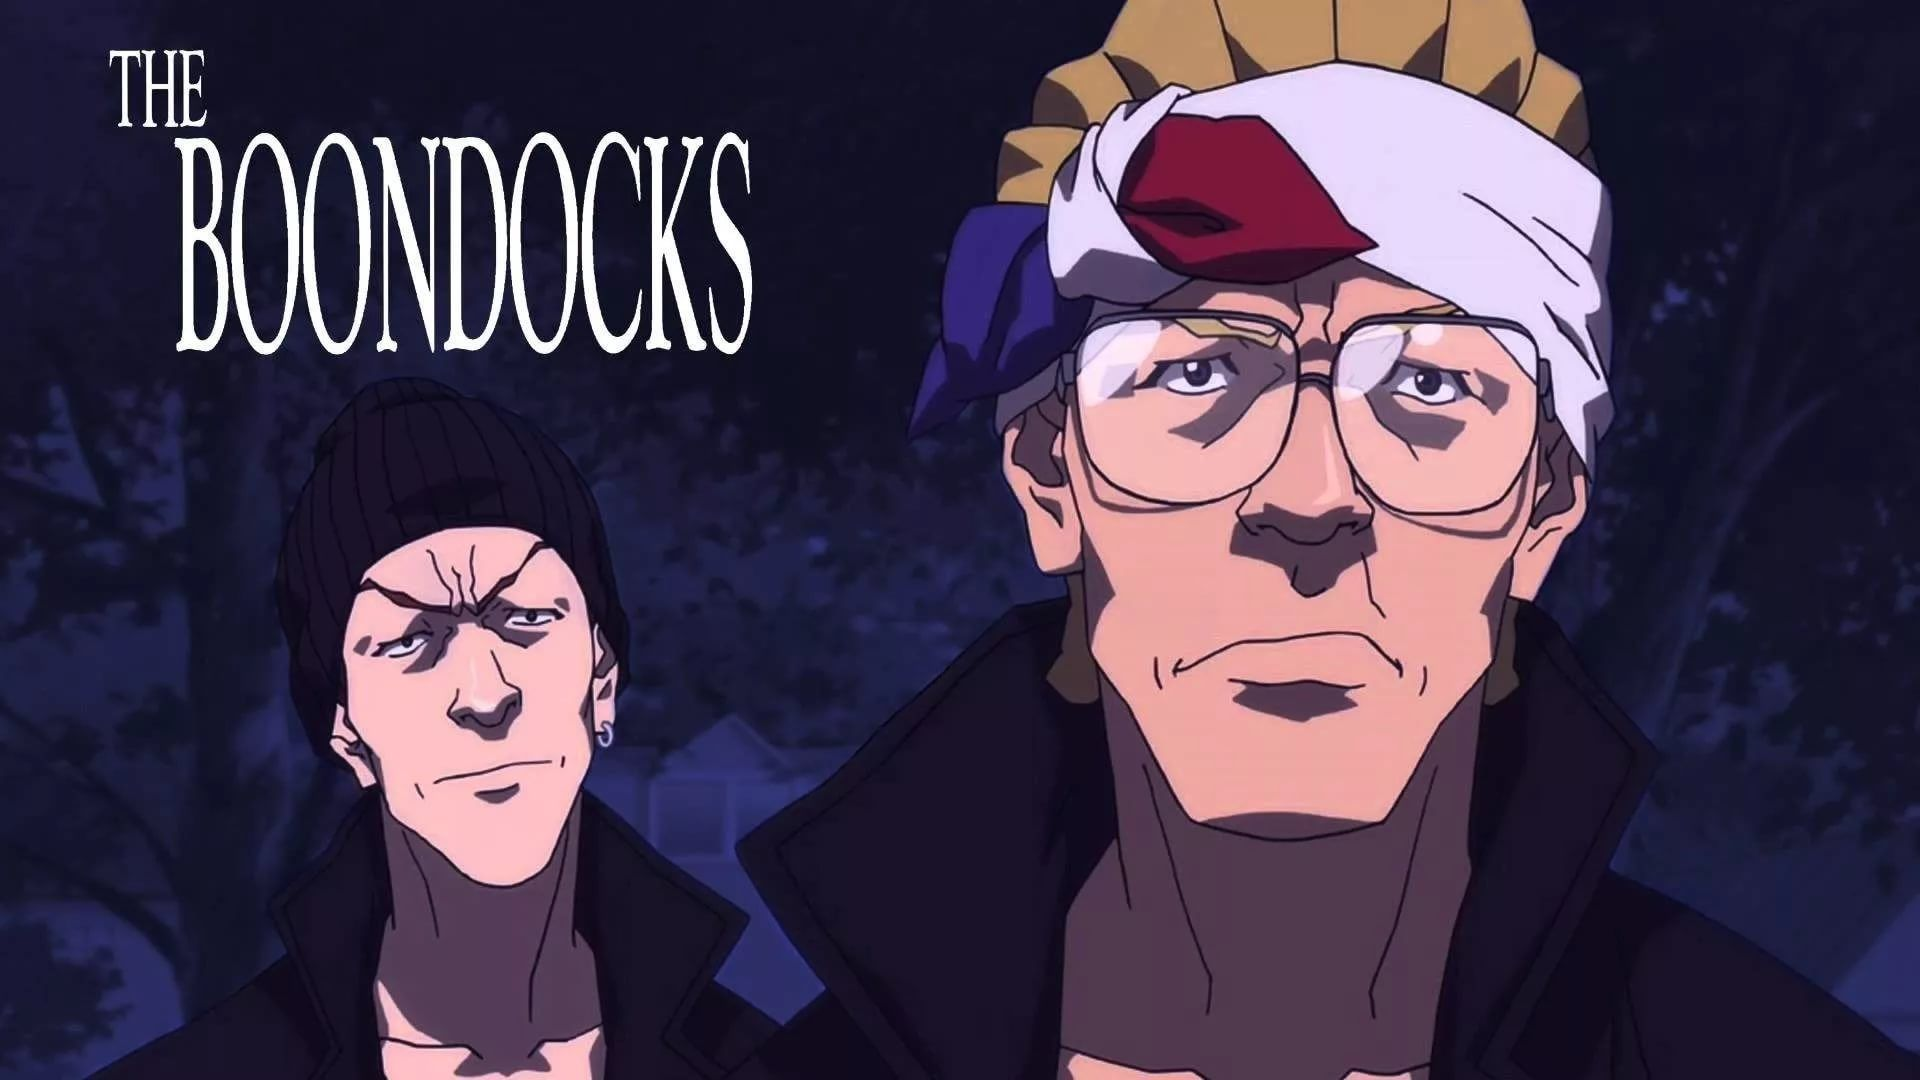 The Boondockst wallpaper picture hd